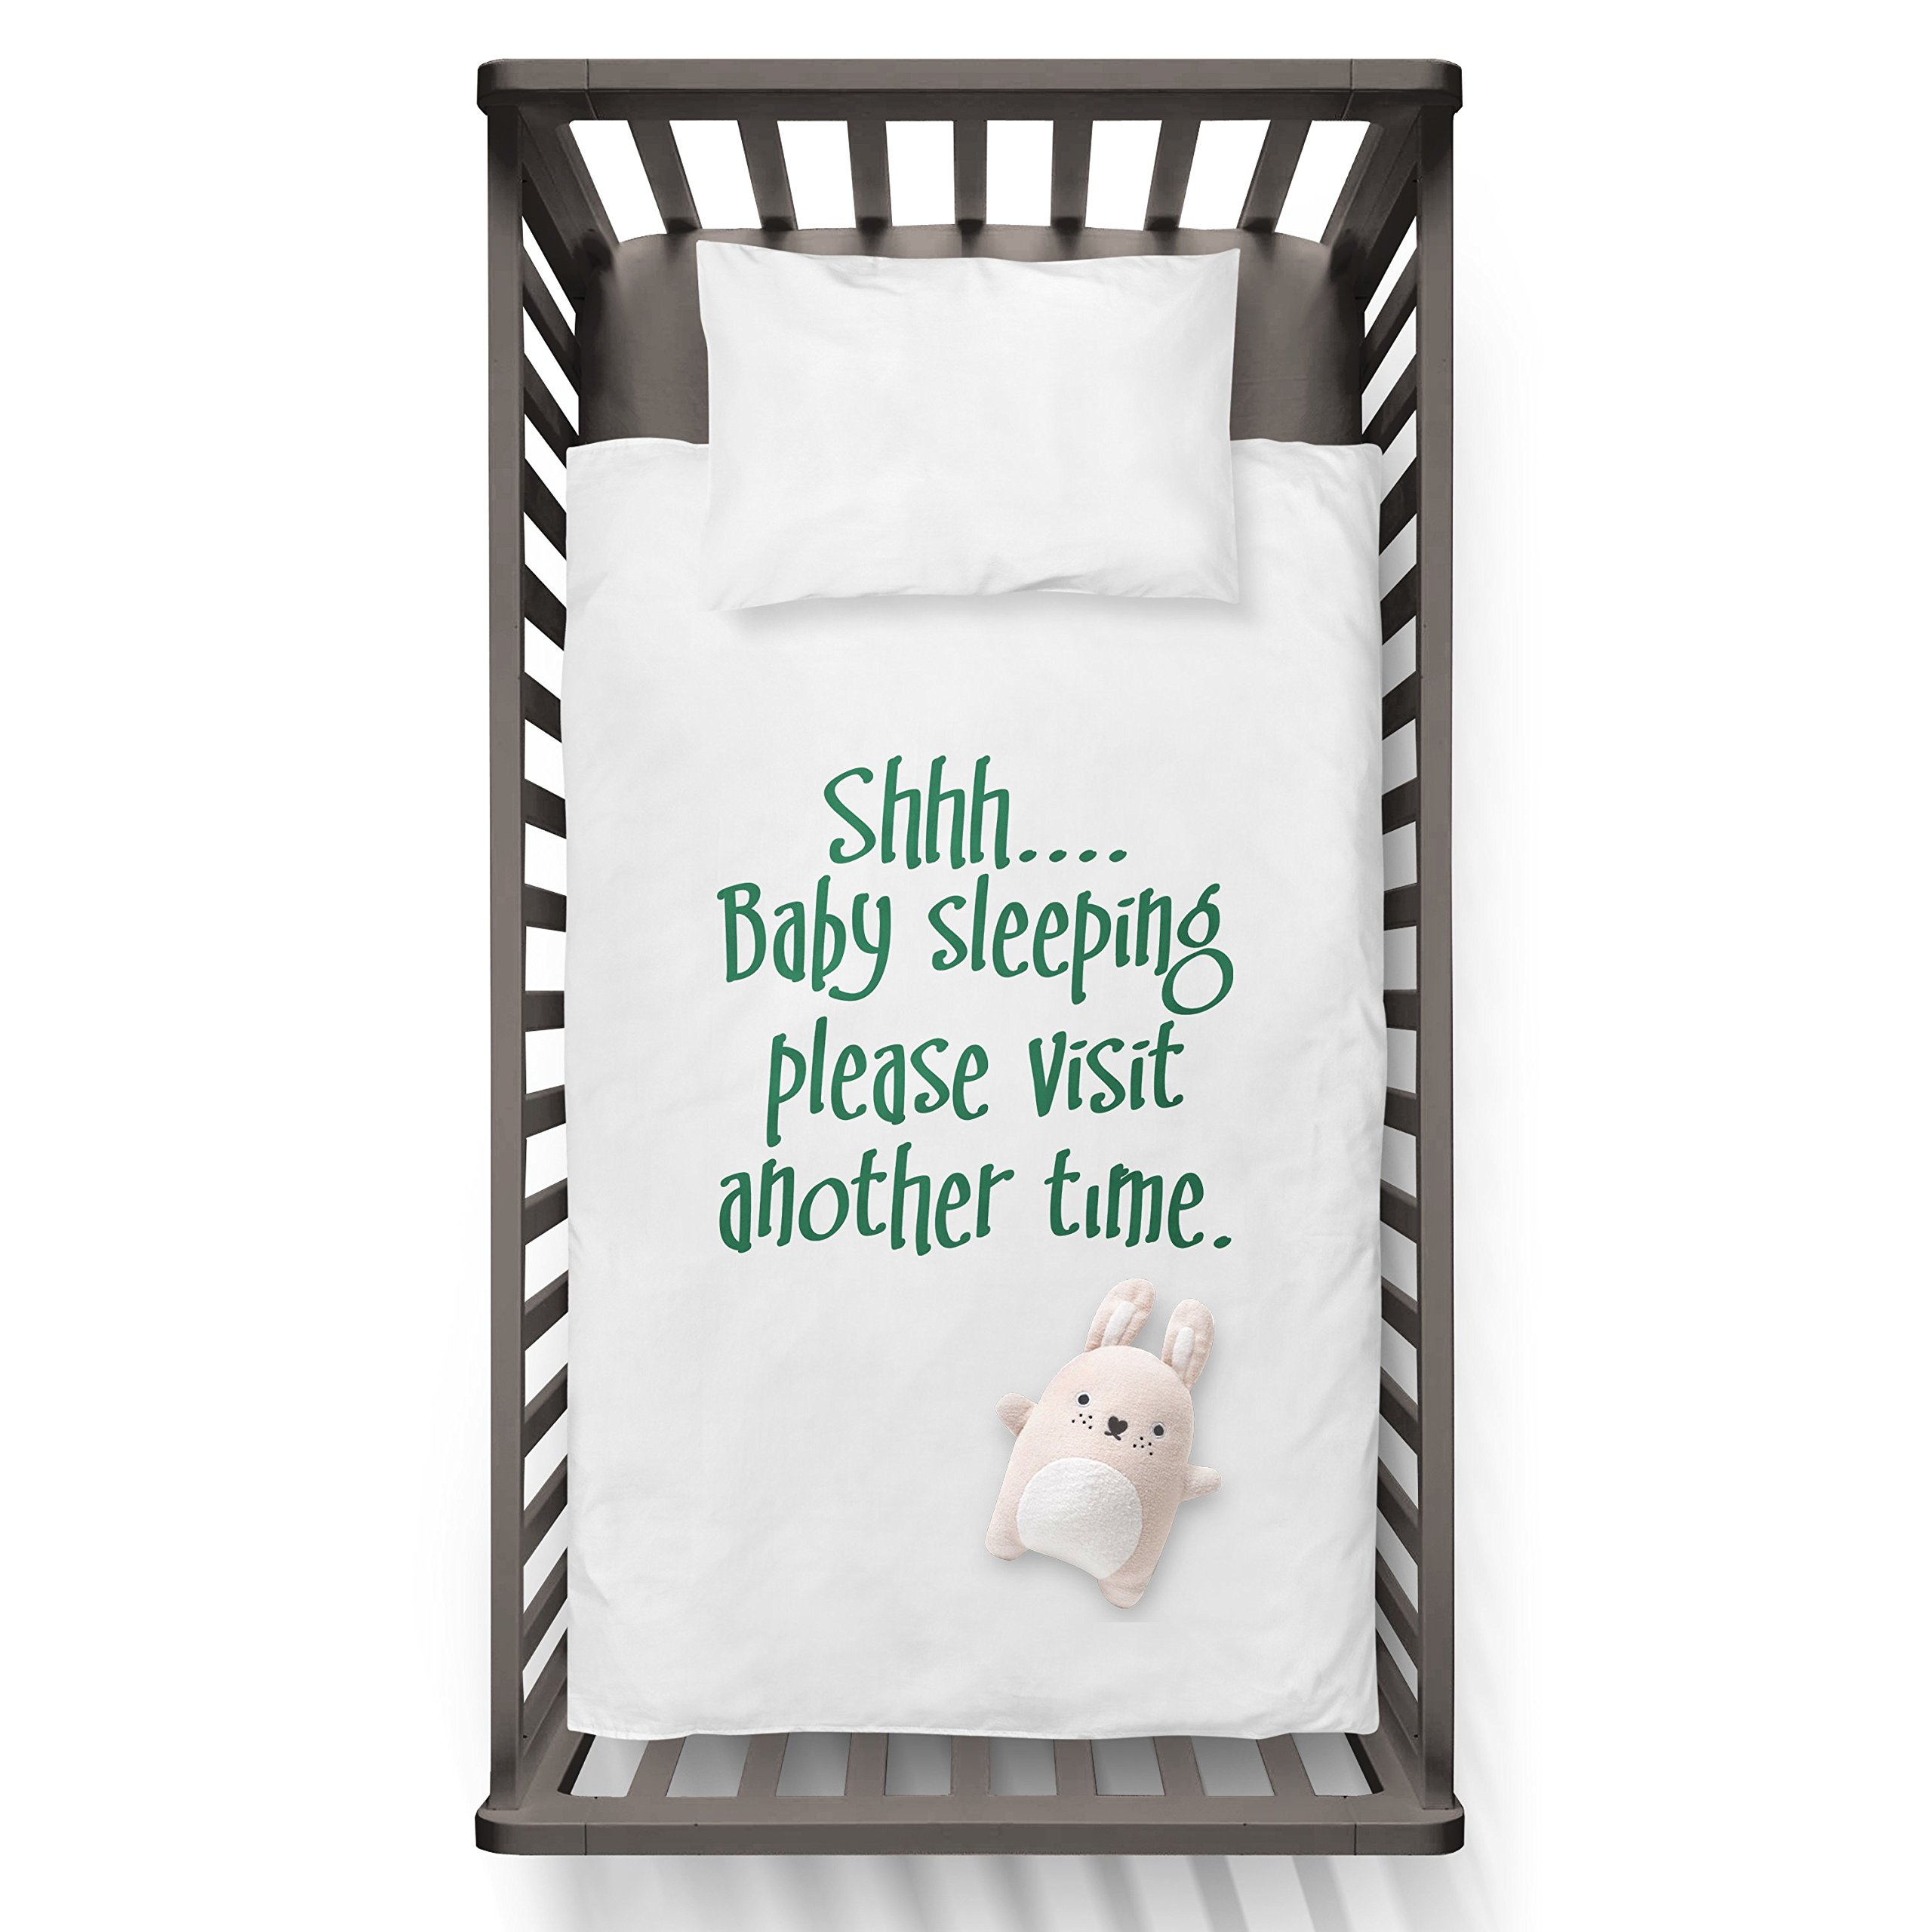 Shhhh..Baby Sleeping Please Visit Another Time. Funny Humor Hip Baby Duvet /Pillow set,Toddler Duvet,Oeko-Tex,Personalized duvet and pillow,Oraganic,gift